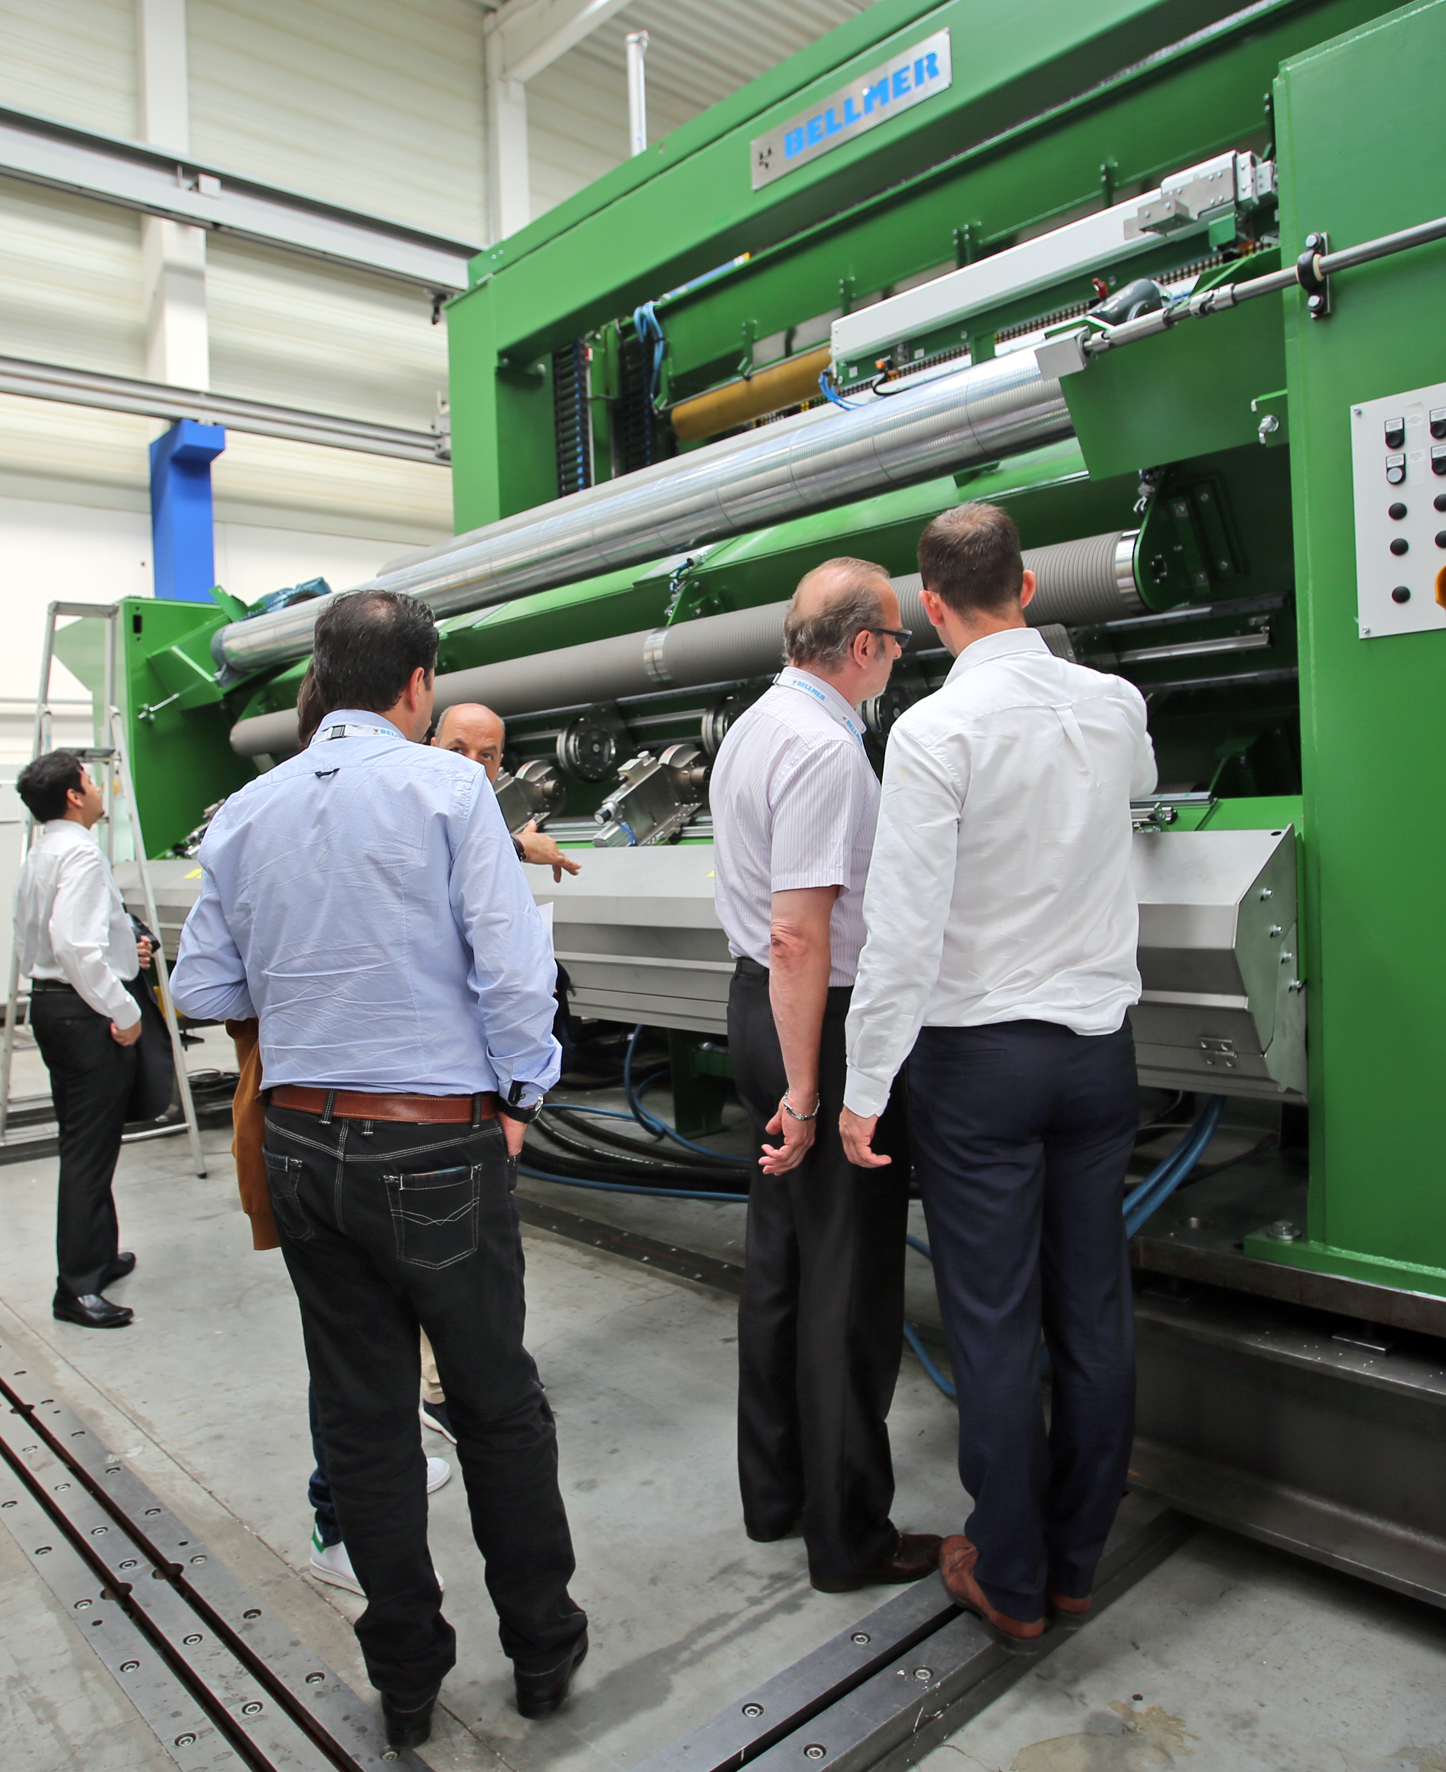 he participants had the possibility to view the previously explained machine units.